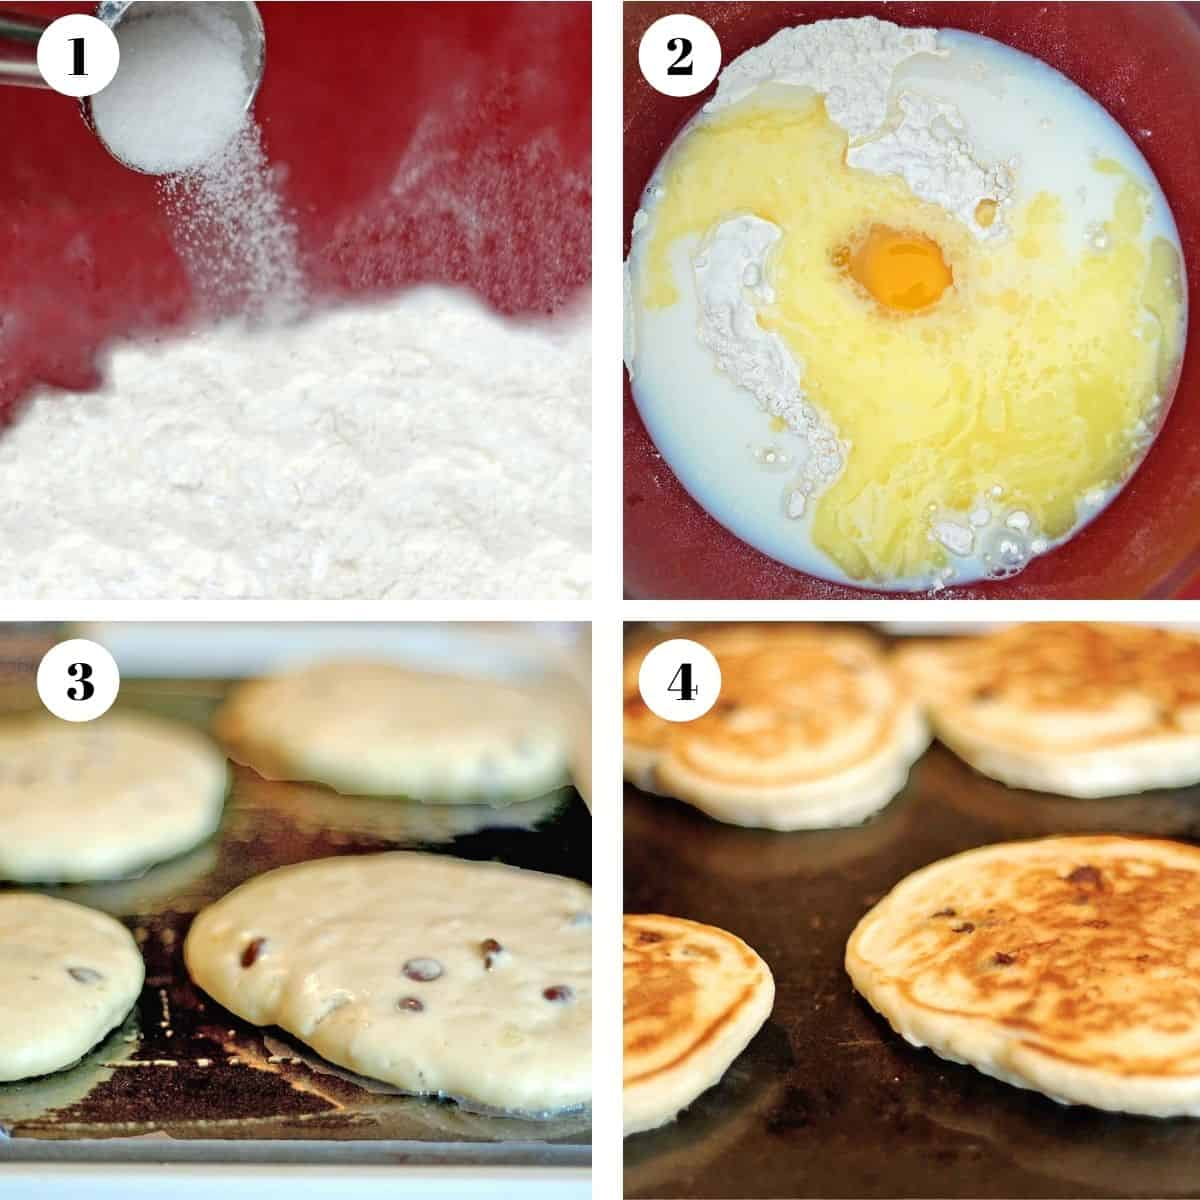 Pouring ingredients into a mixing bowl and then cooking pancakes on a griddle.